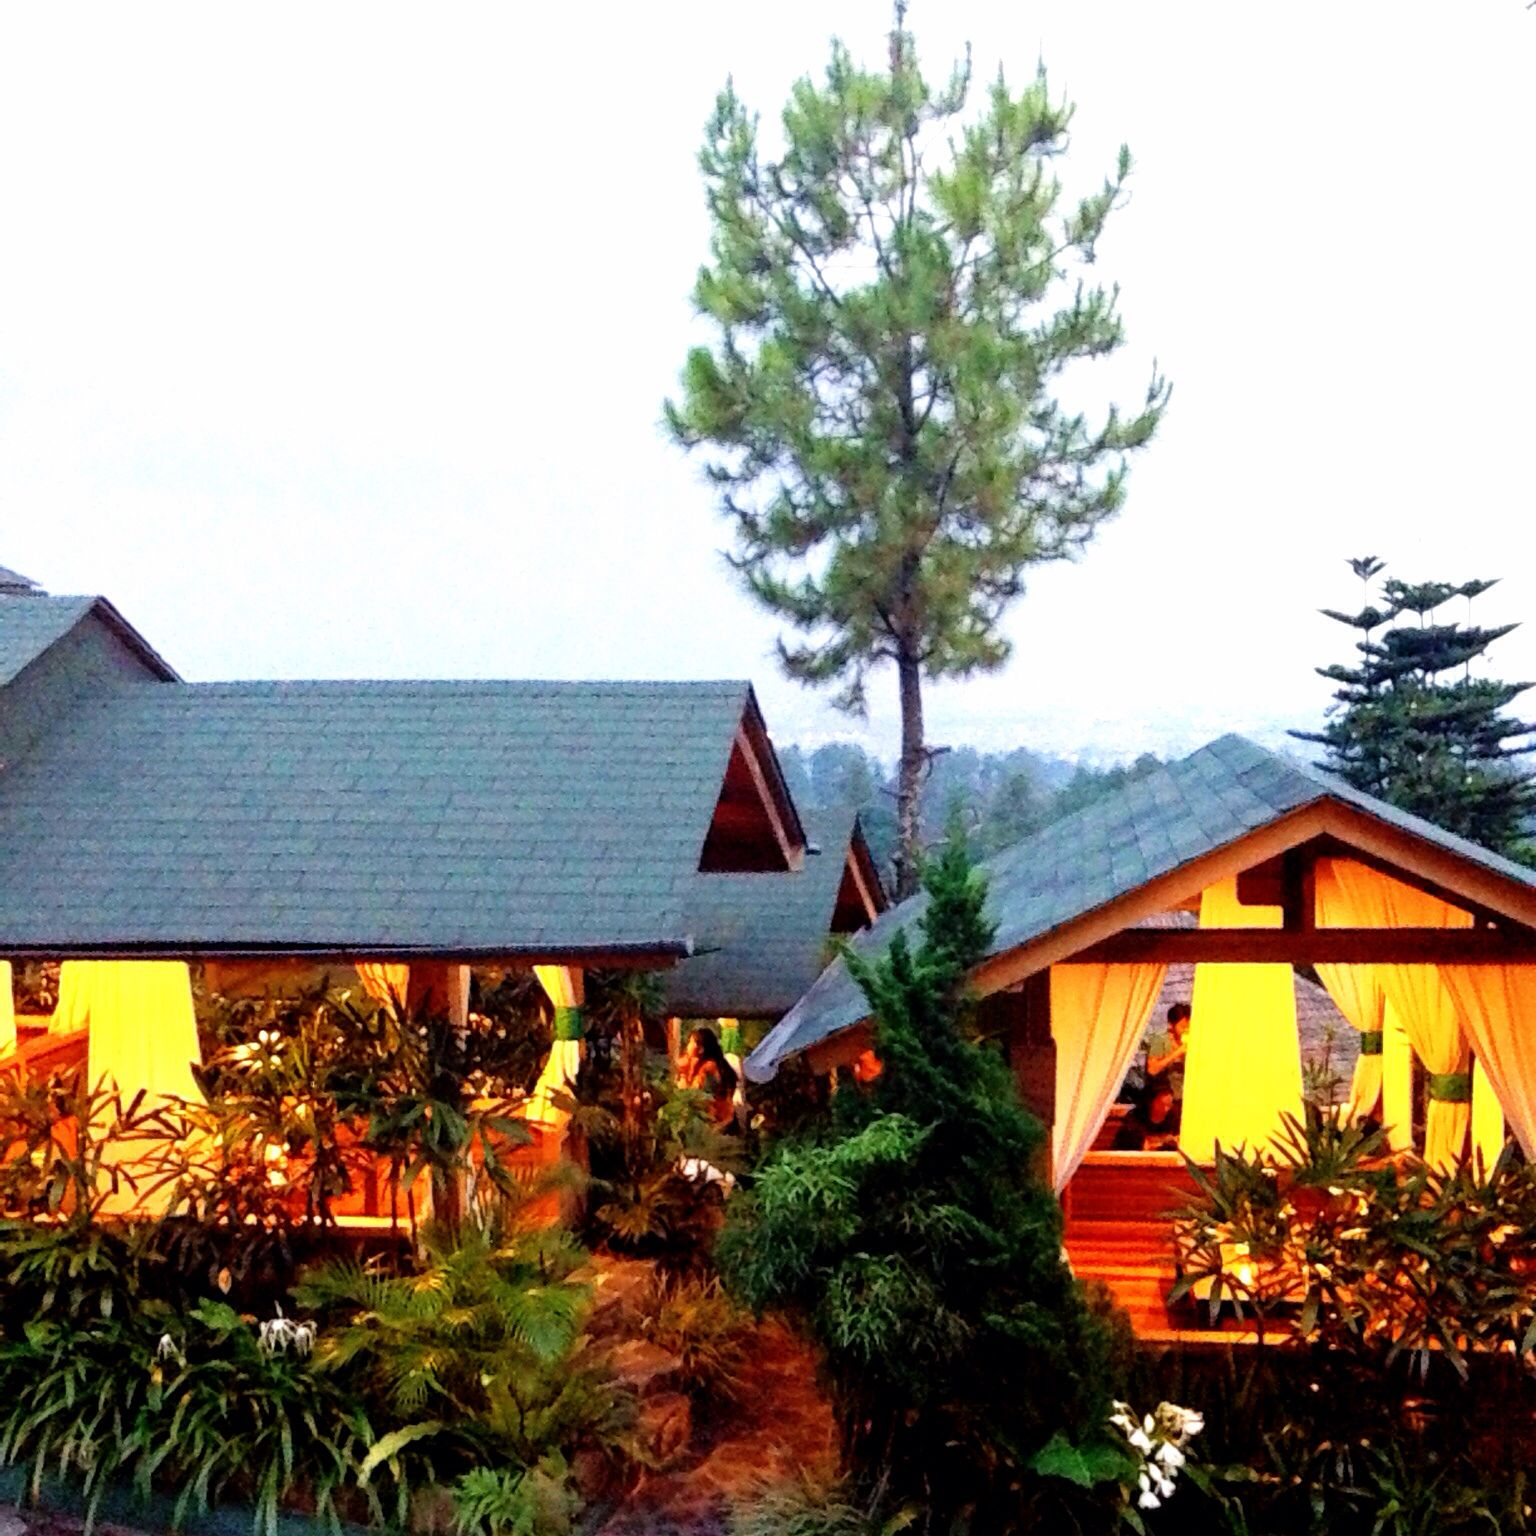 The Stone Cafe Bandung Indonesia West Java Places To Go Bandung